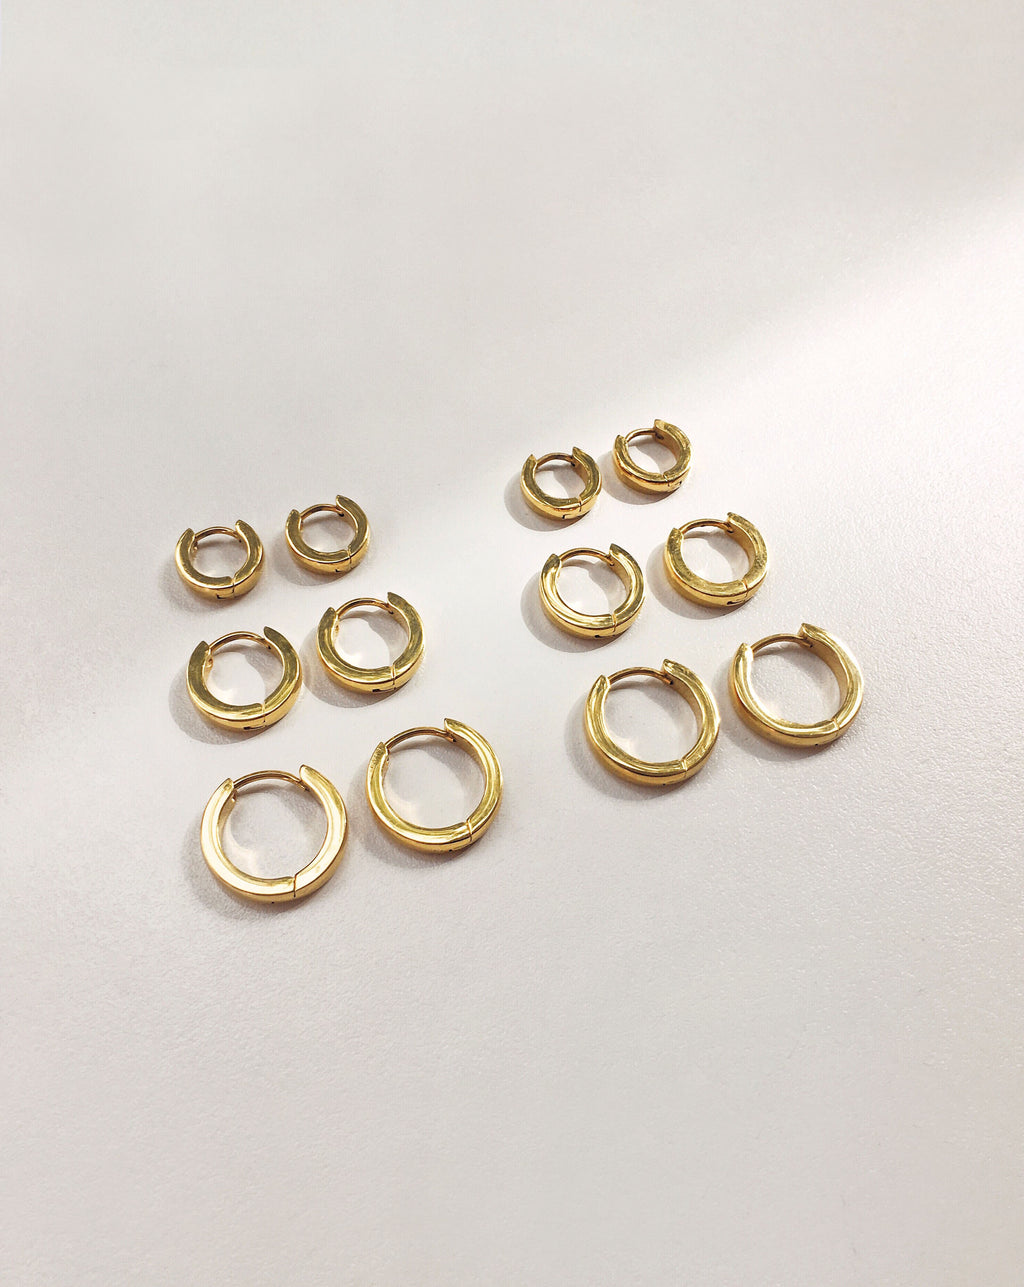 Set of 3 continuous gold hoop earring with 3mm thickness - Ise Mini Hoops by TheHexad